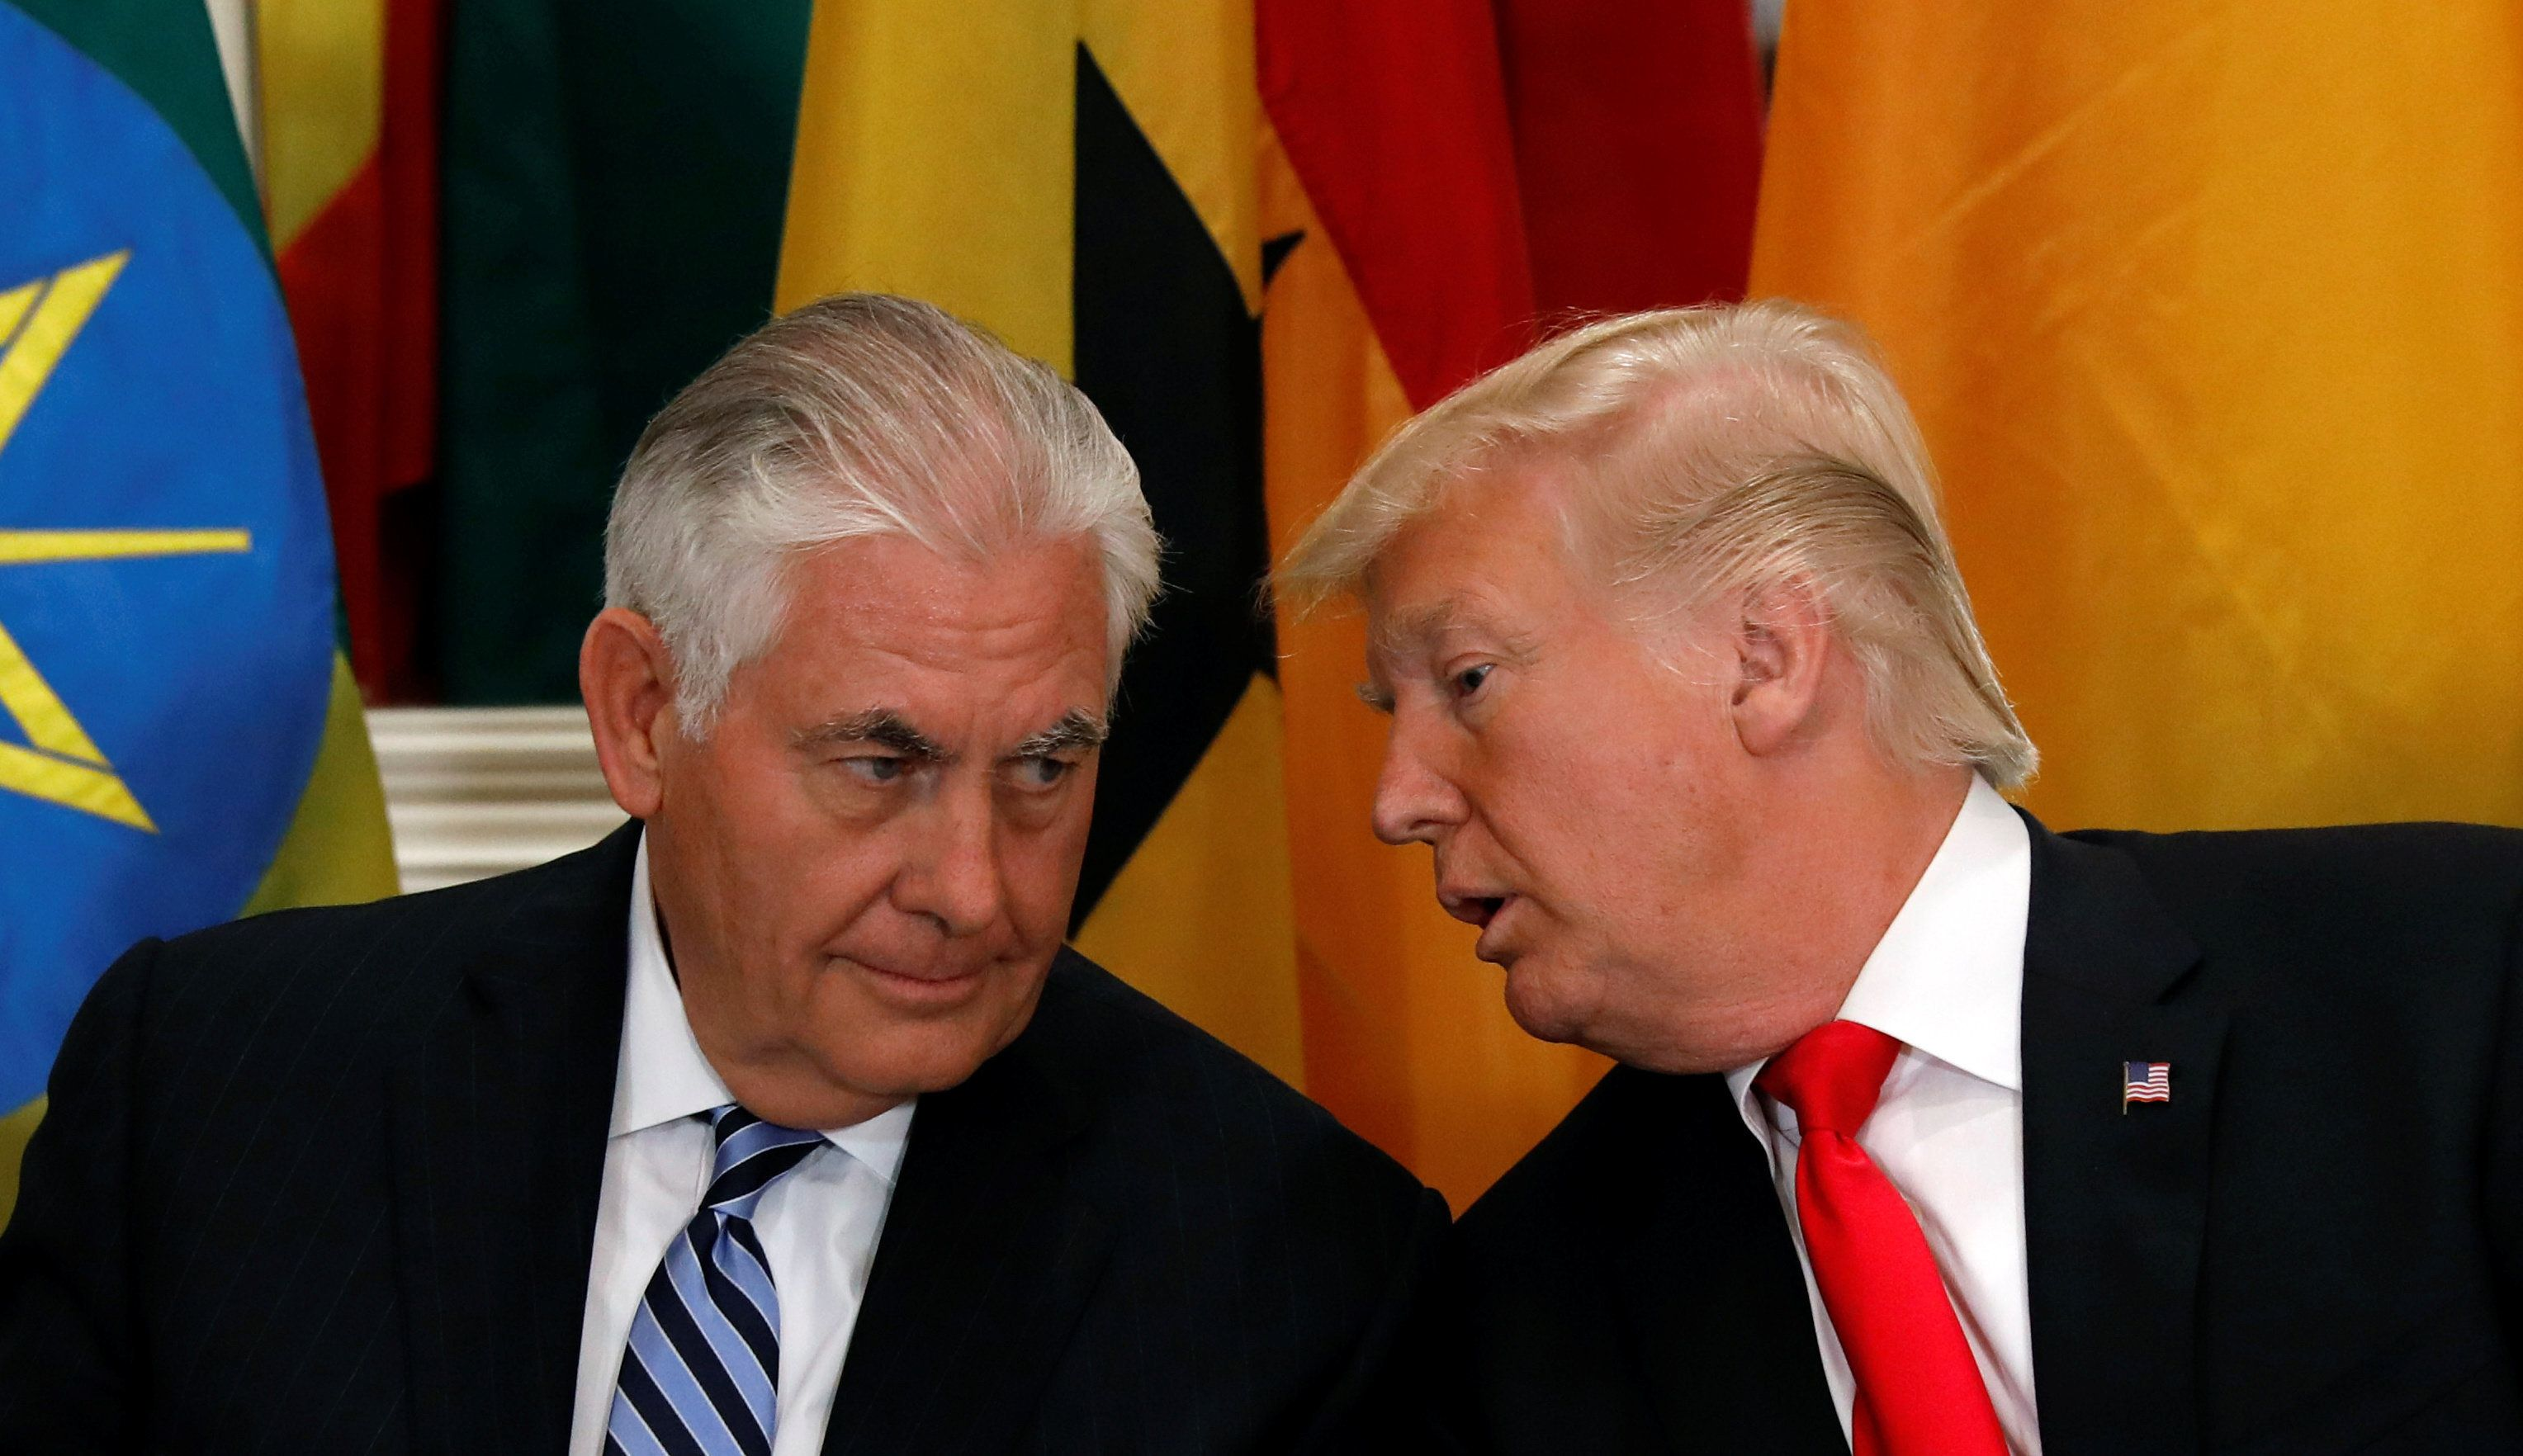 Tillerson on North Korea: Diplomacy will continue 'until the first bomb drops'